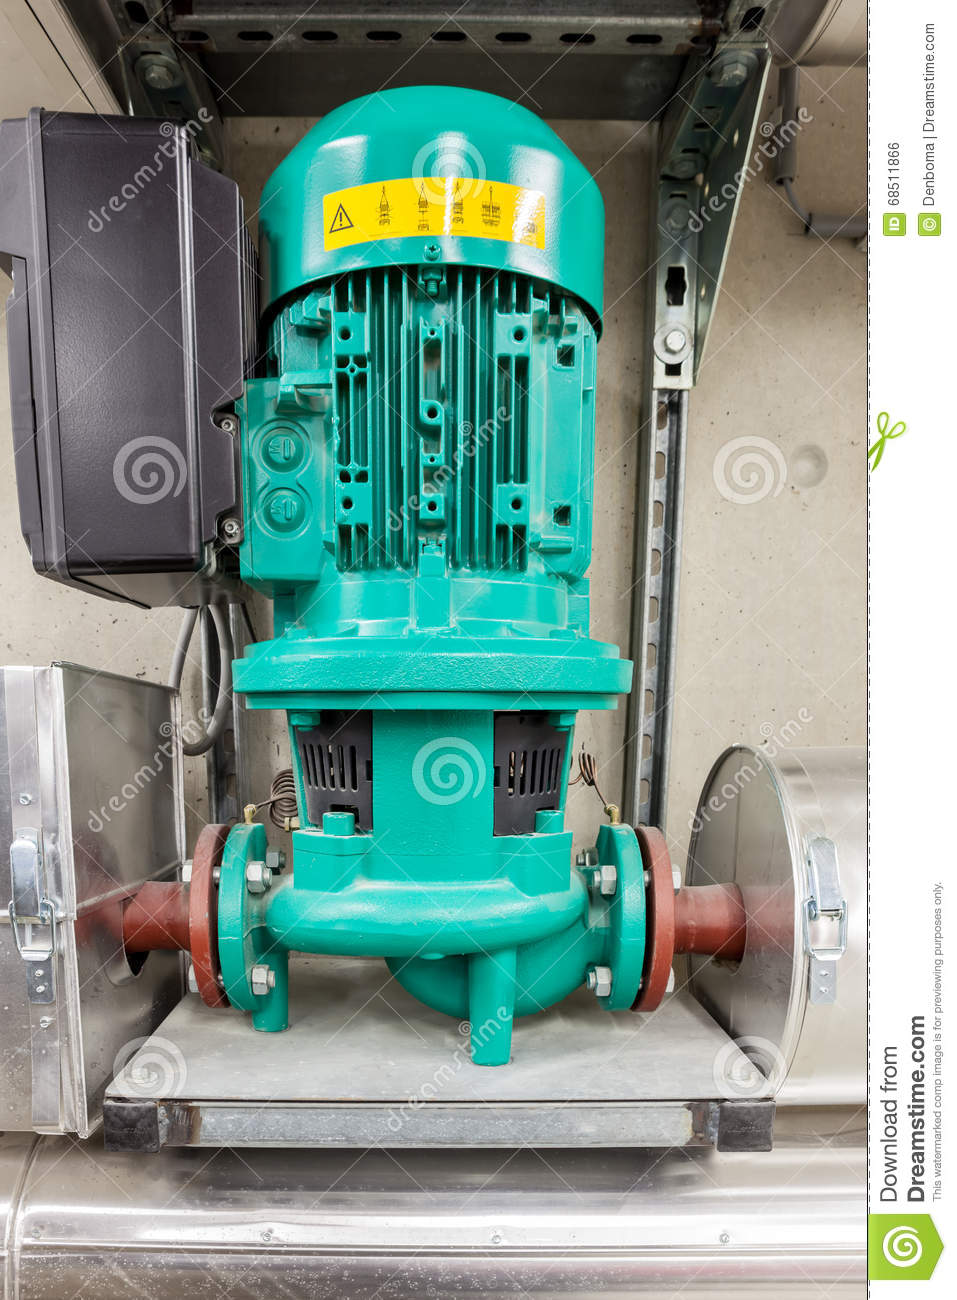 Water pump for hot water stock photo. Image of steel - 68511866